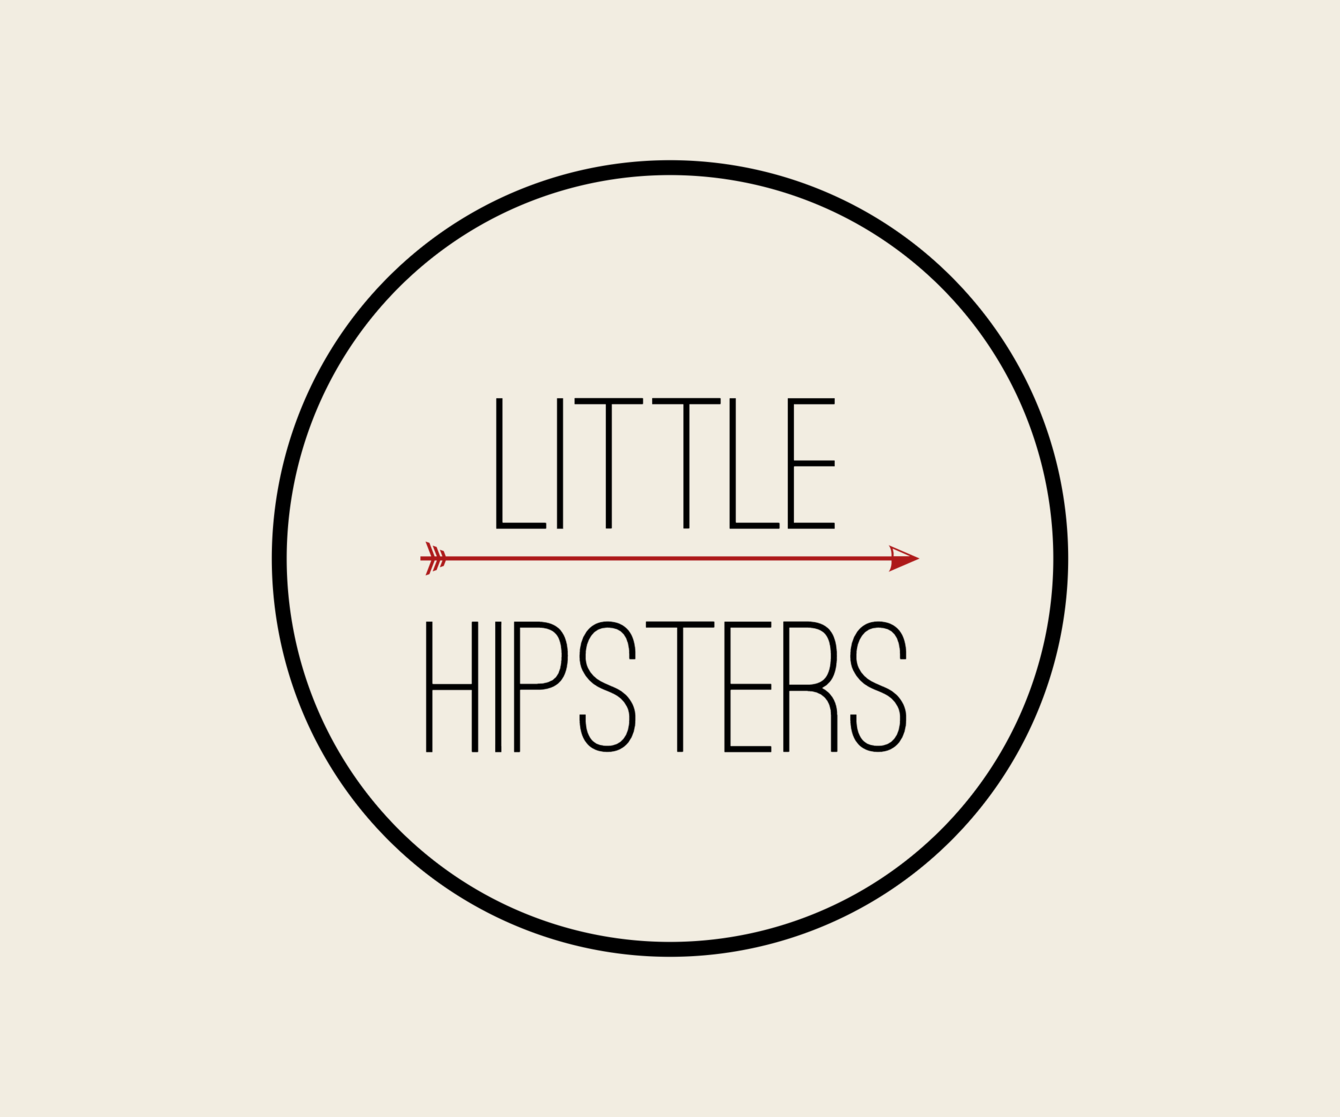 LittleHipsters